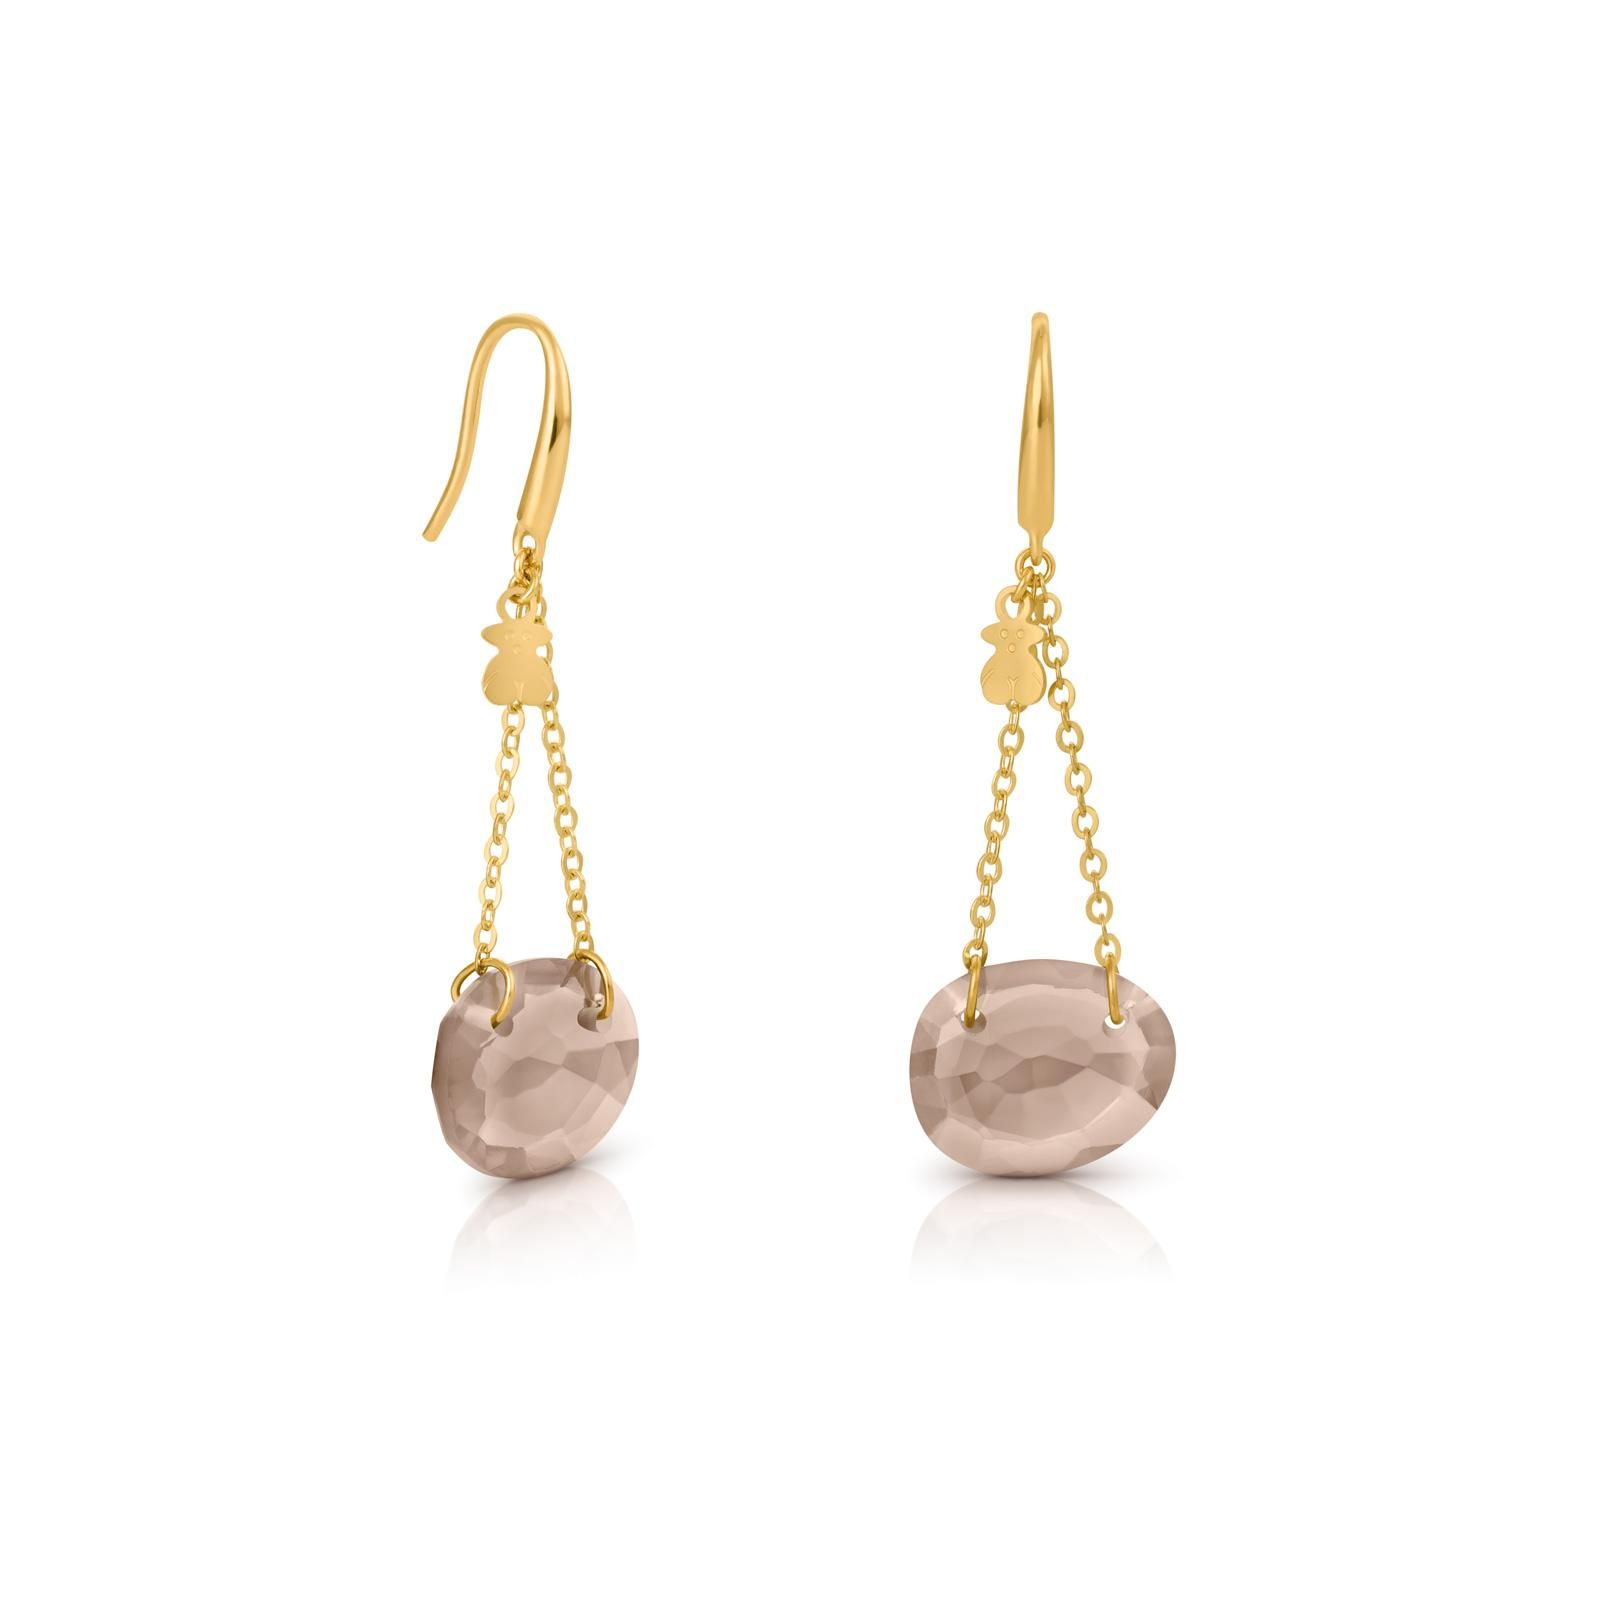 18kt yellow gold TOUS Tesoro earrings with smoked quartz 1 4cm x